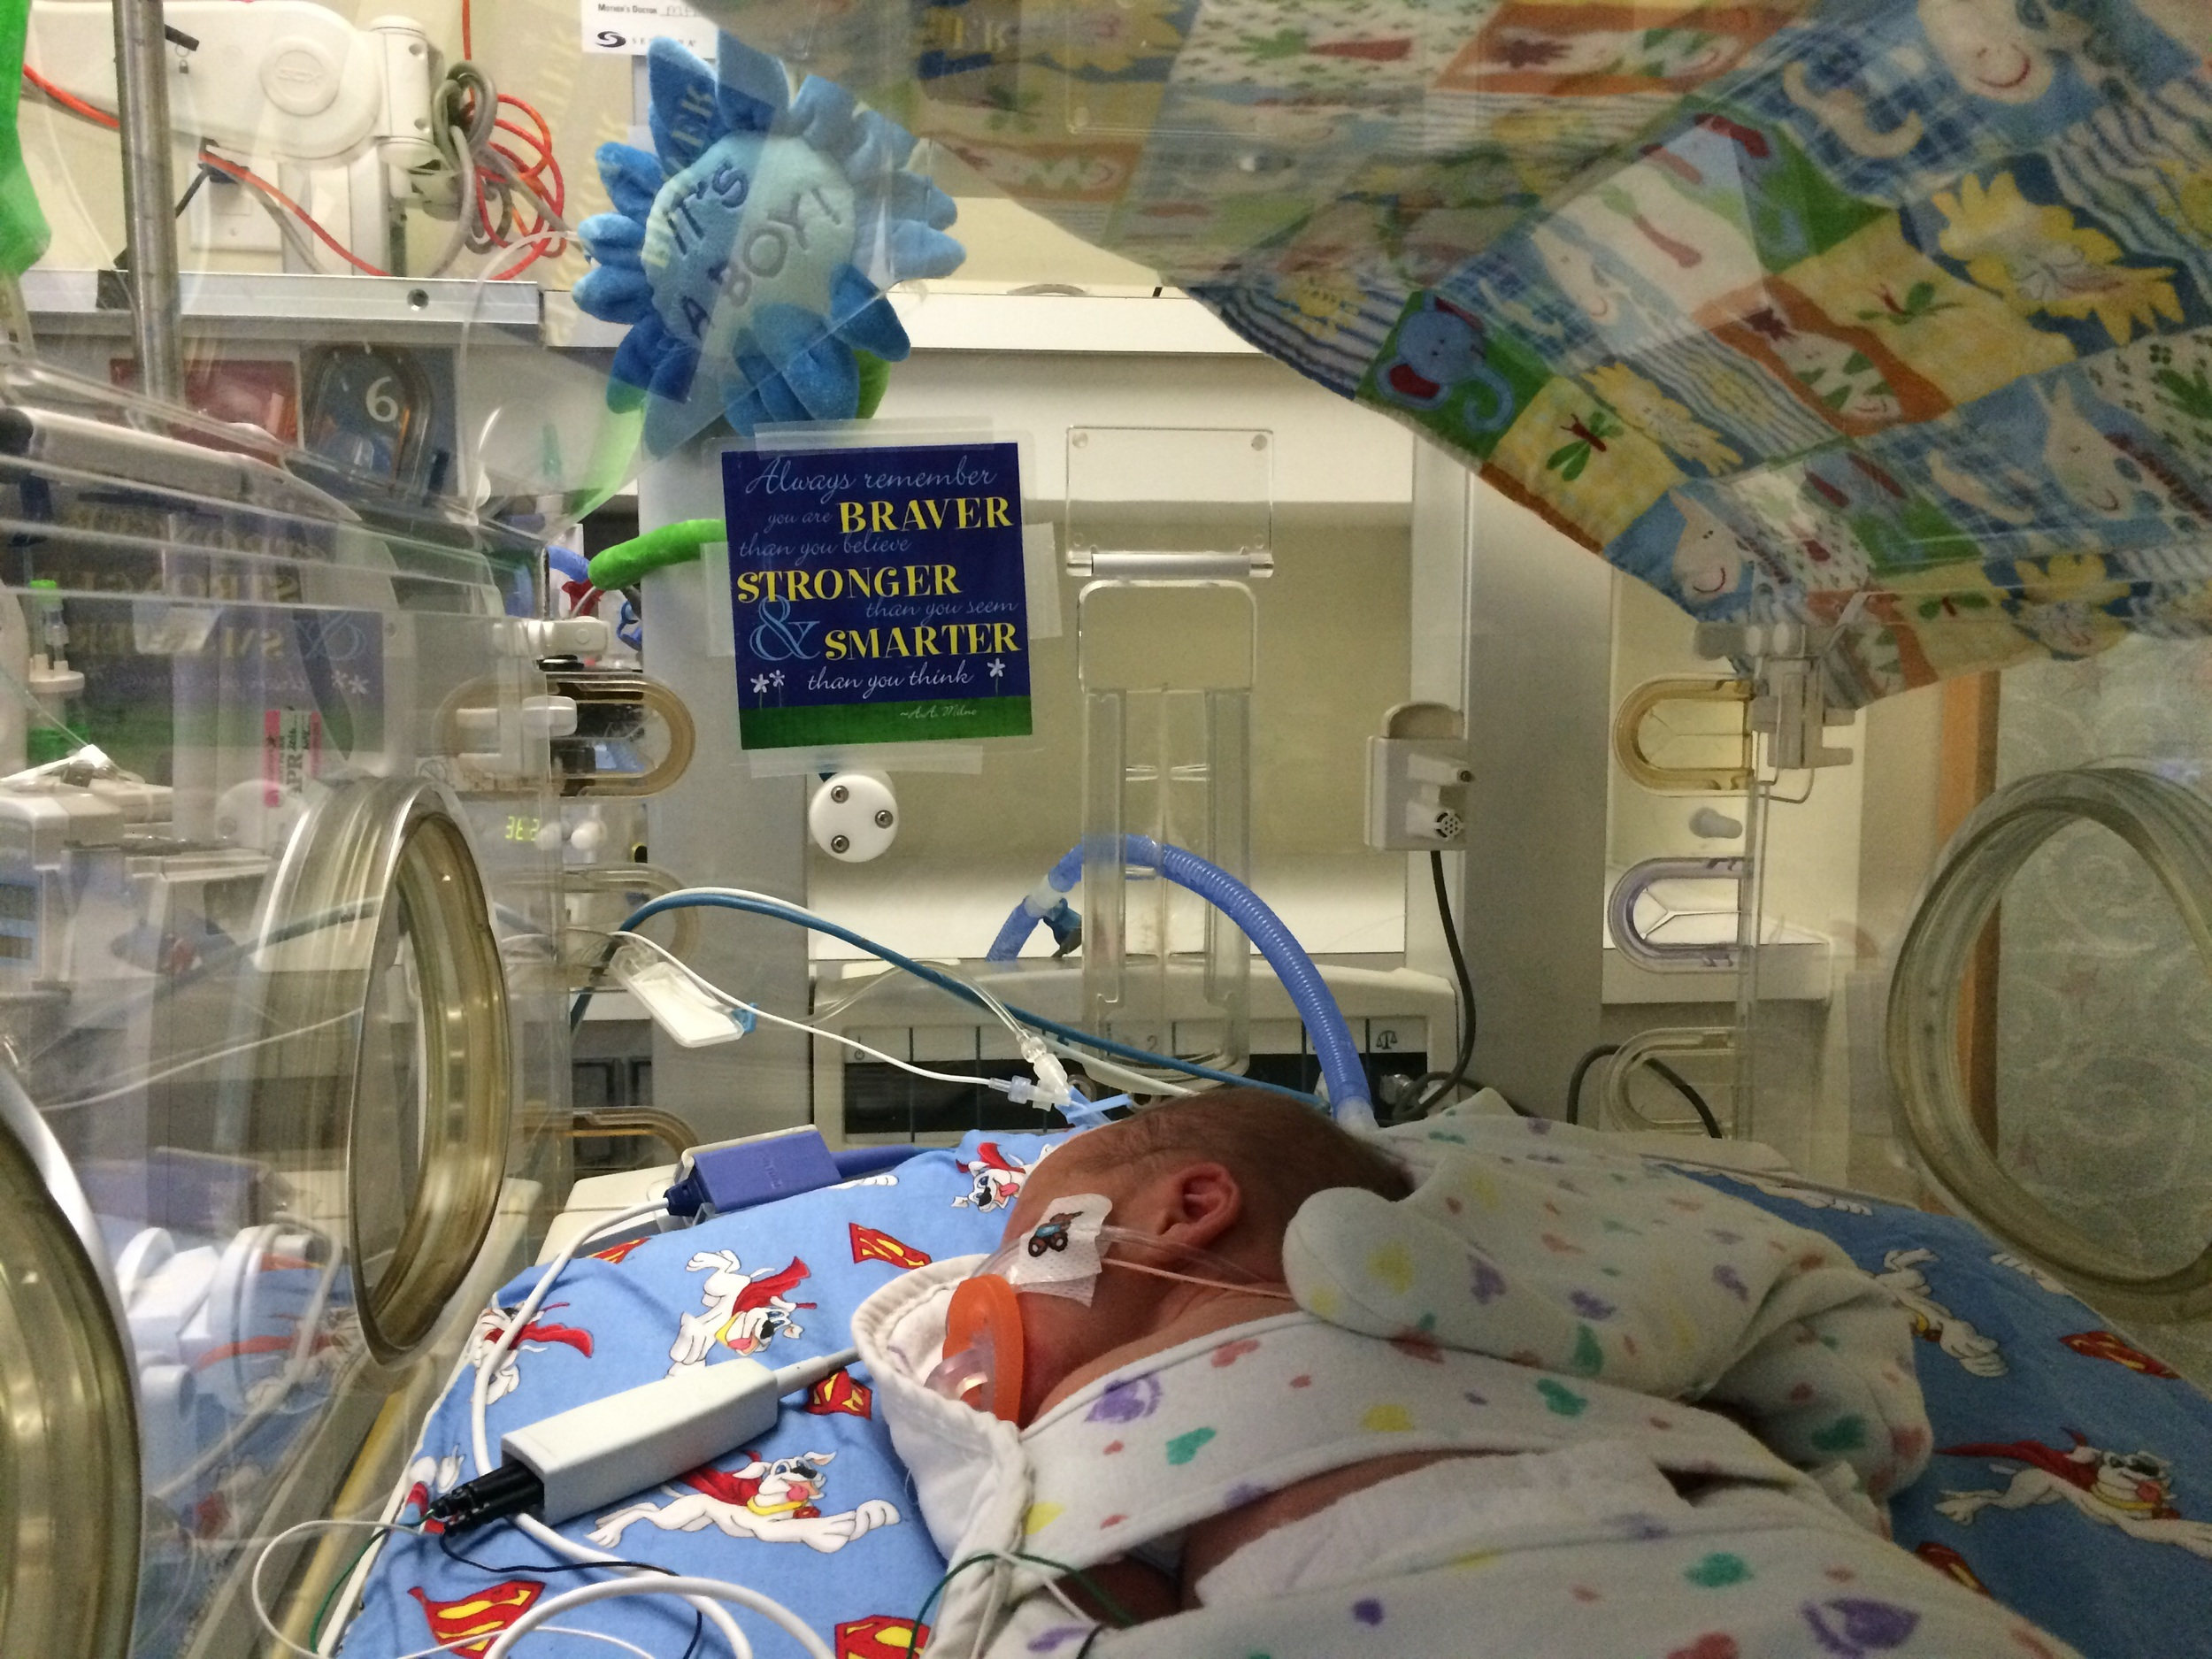 Preemie Baby Boy in incubator with NICU crib cards